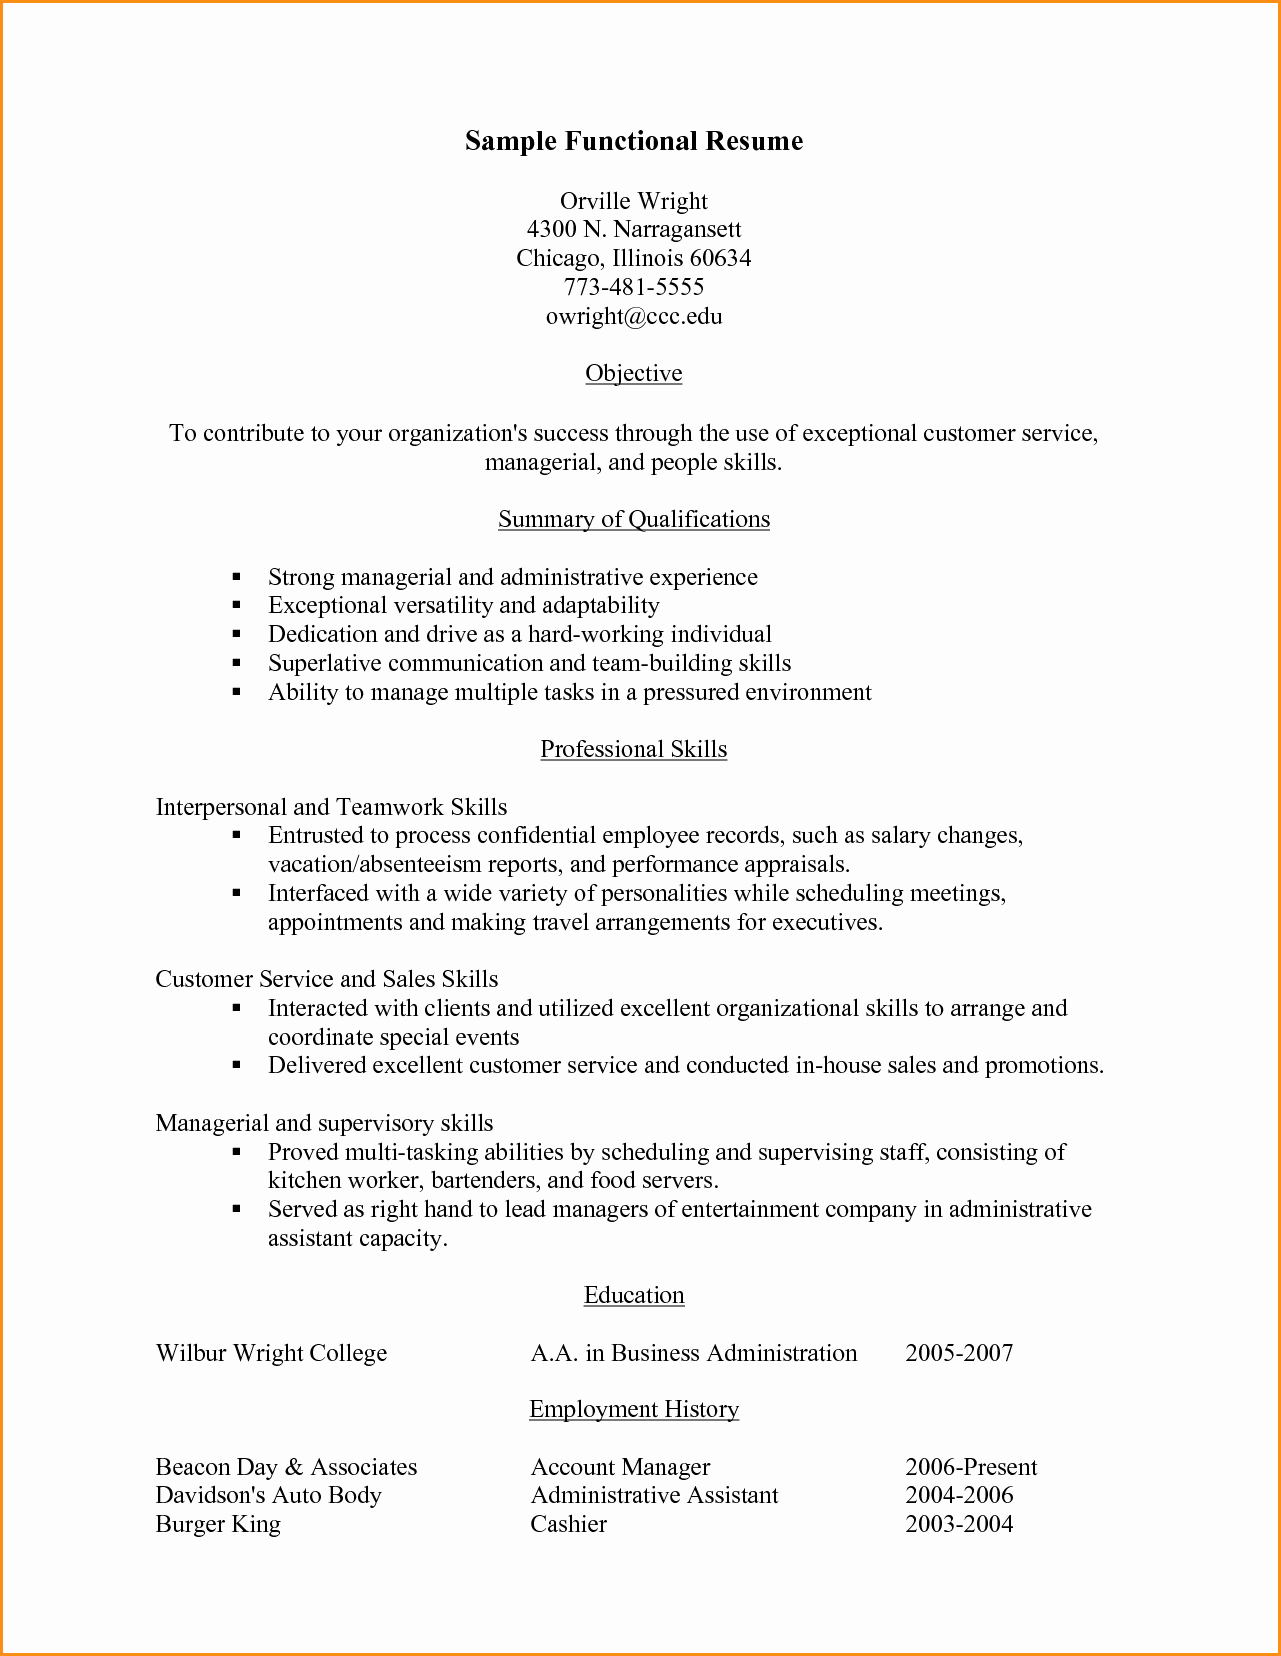 Functional Resume Templates Free Download Inspirational 11 Functional Resume Customer Service